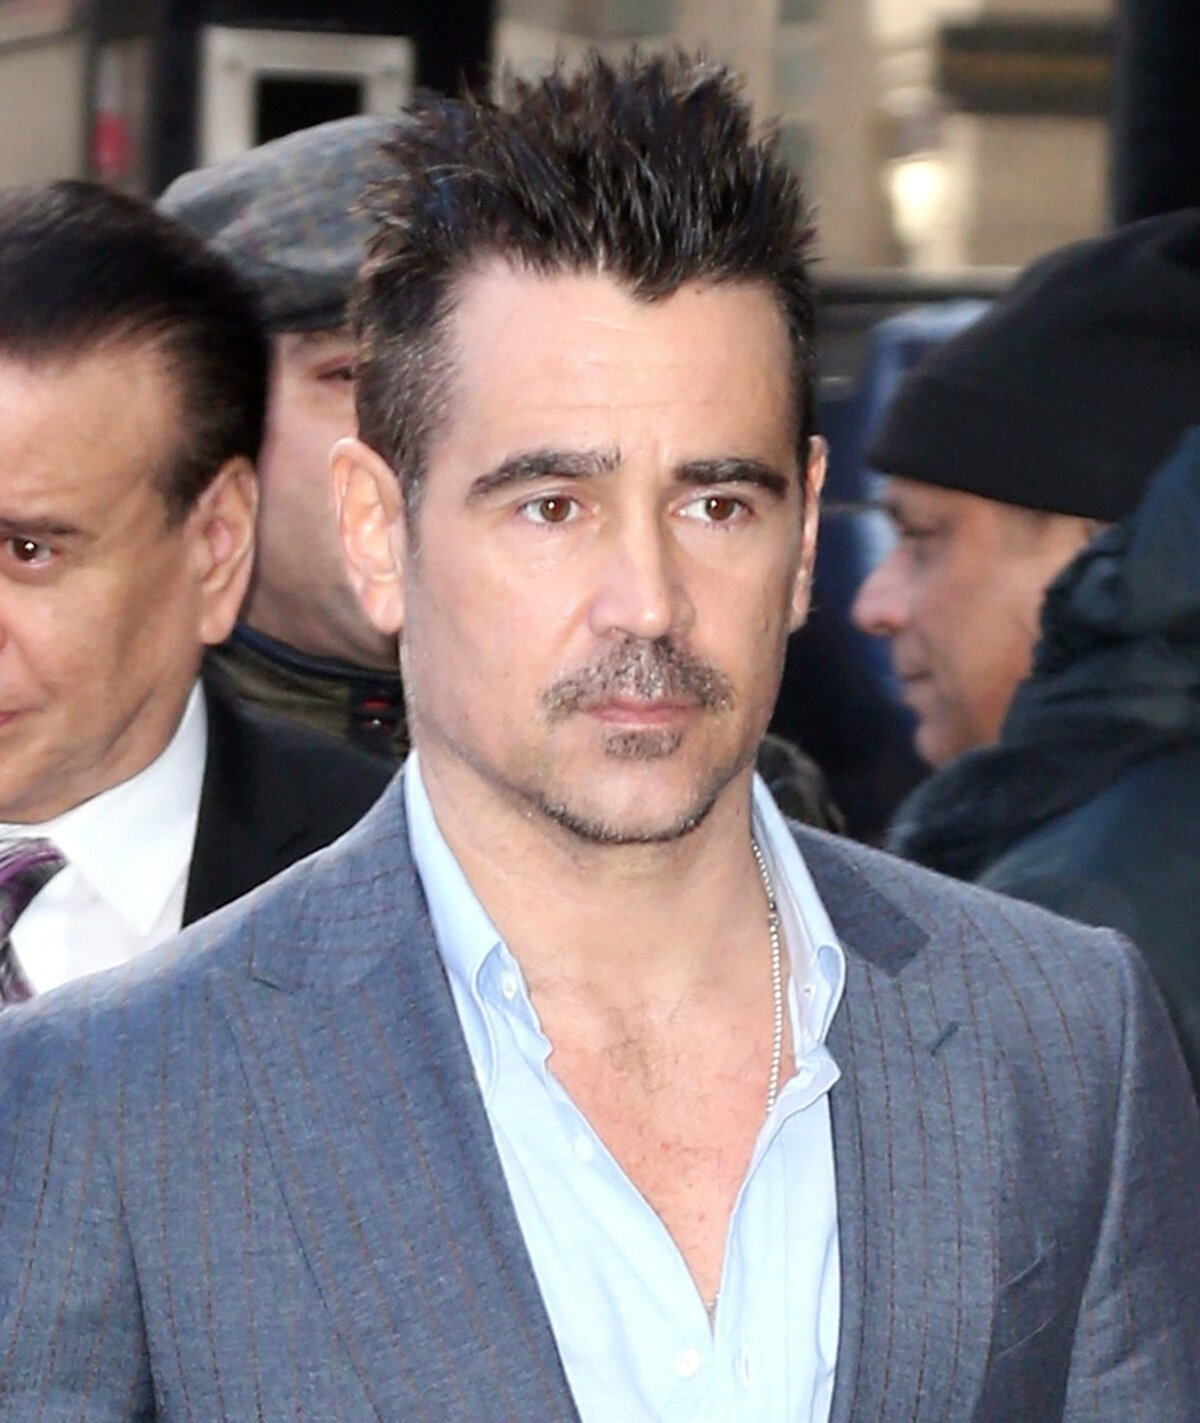 Colin Farrell visits Good Morning America in New York